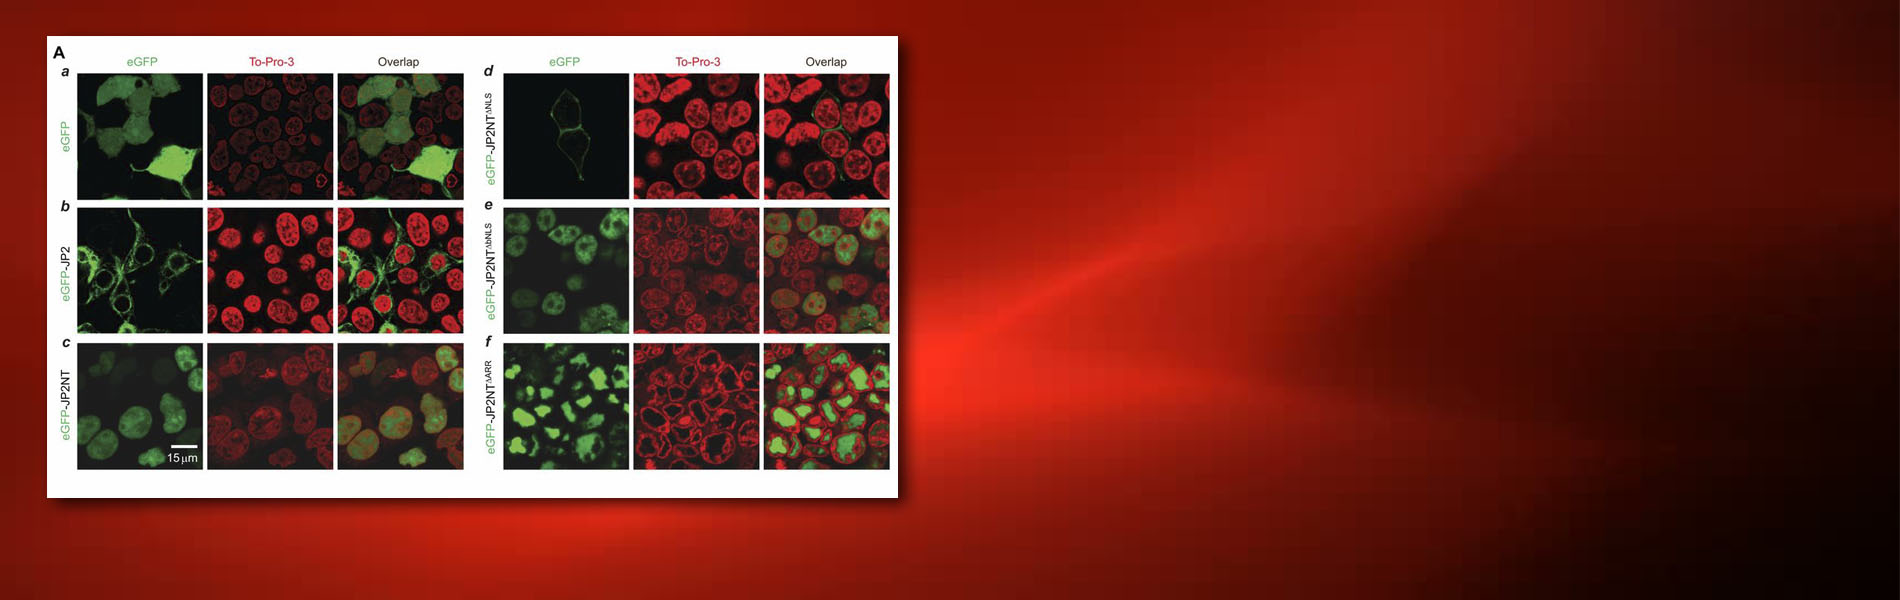 Banner: Failing heart cells trigger self-protection mechanism